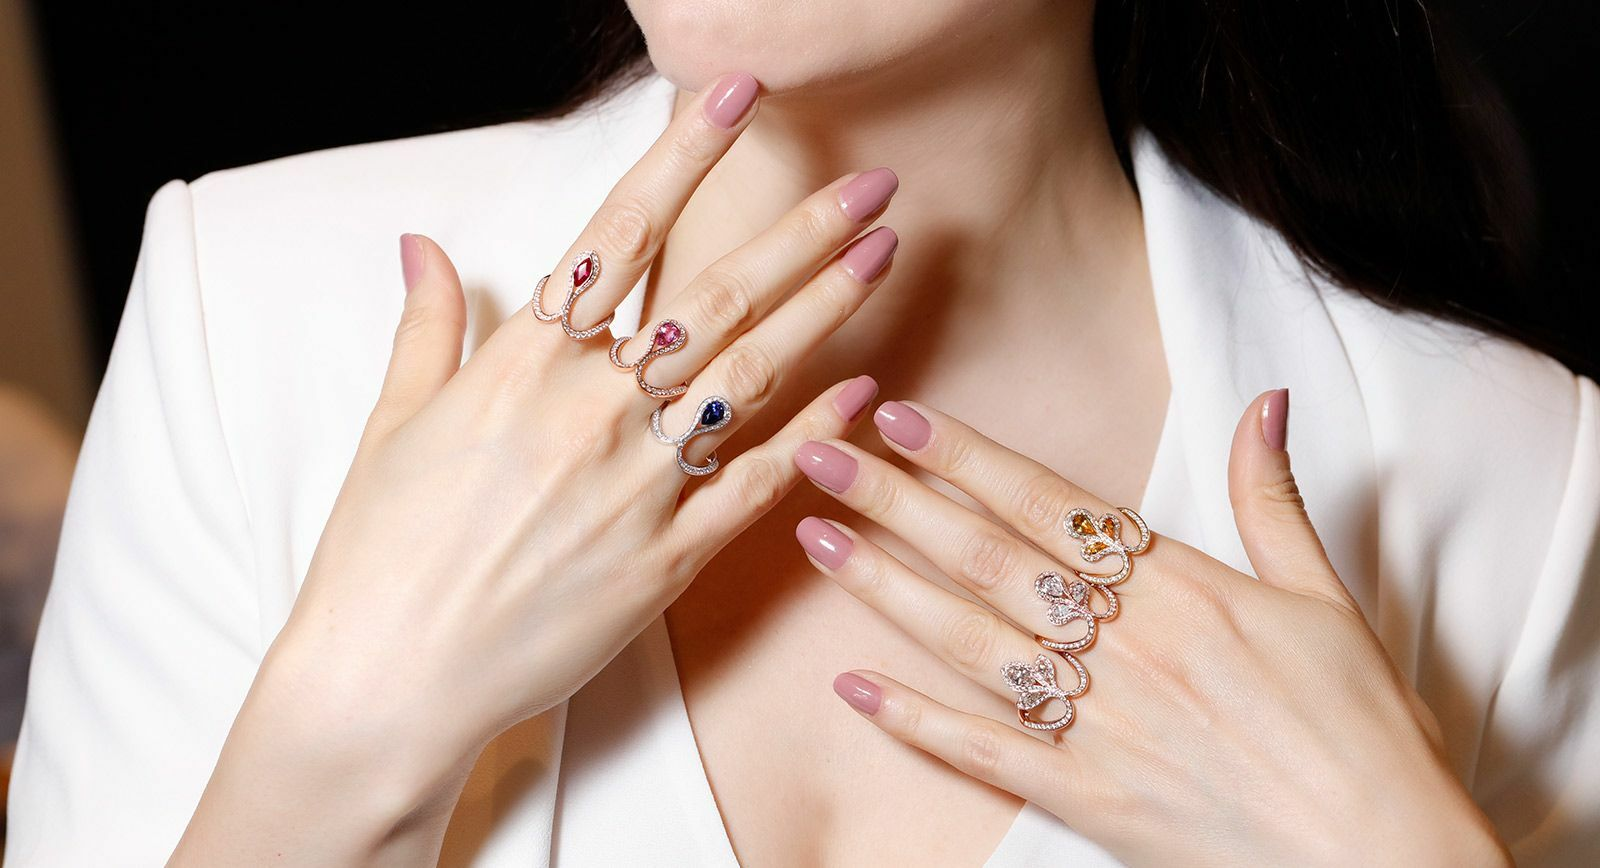 Baenteli Royale collection rings with sapphires and diamonds in white and rose gold